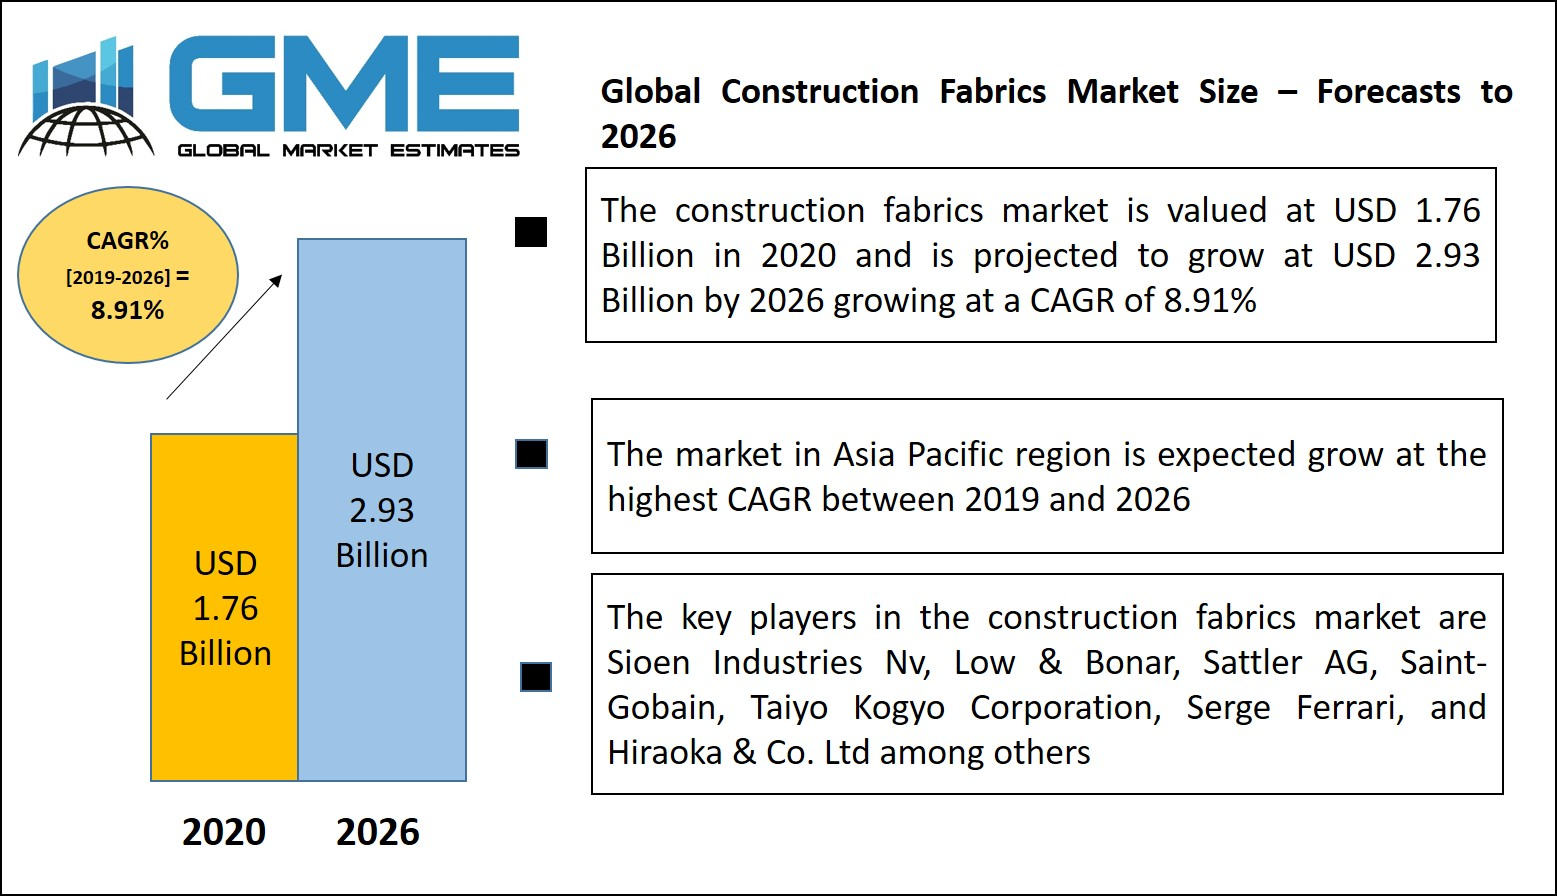 Global Construction Fabrics Market Size, Trends & Analysis - Forecasts To 2026